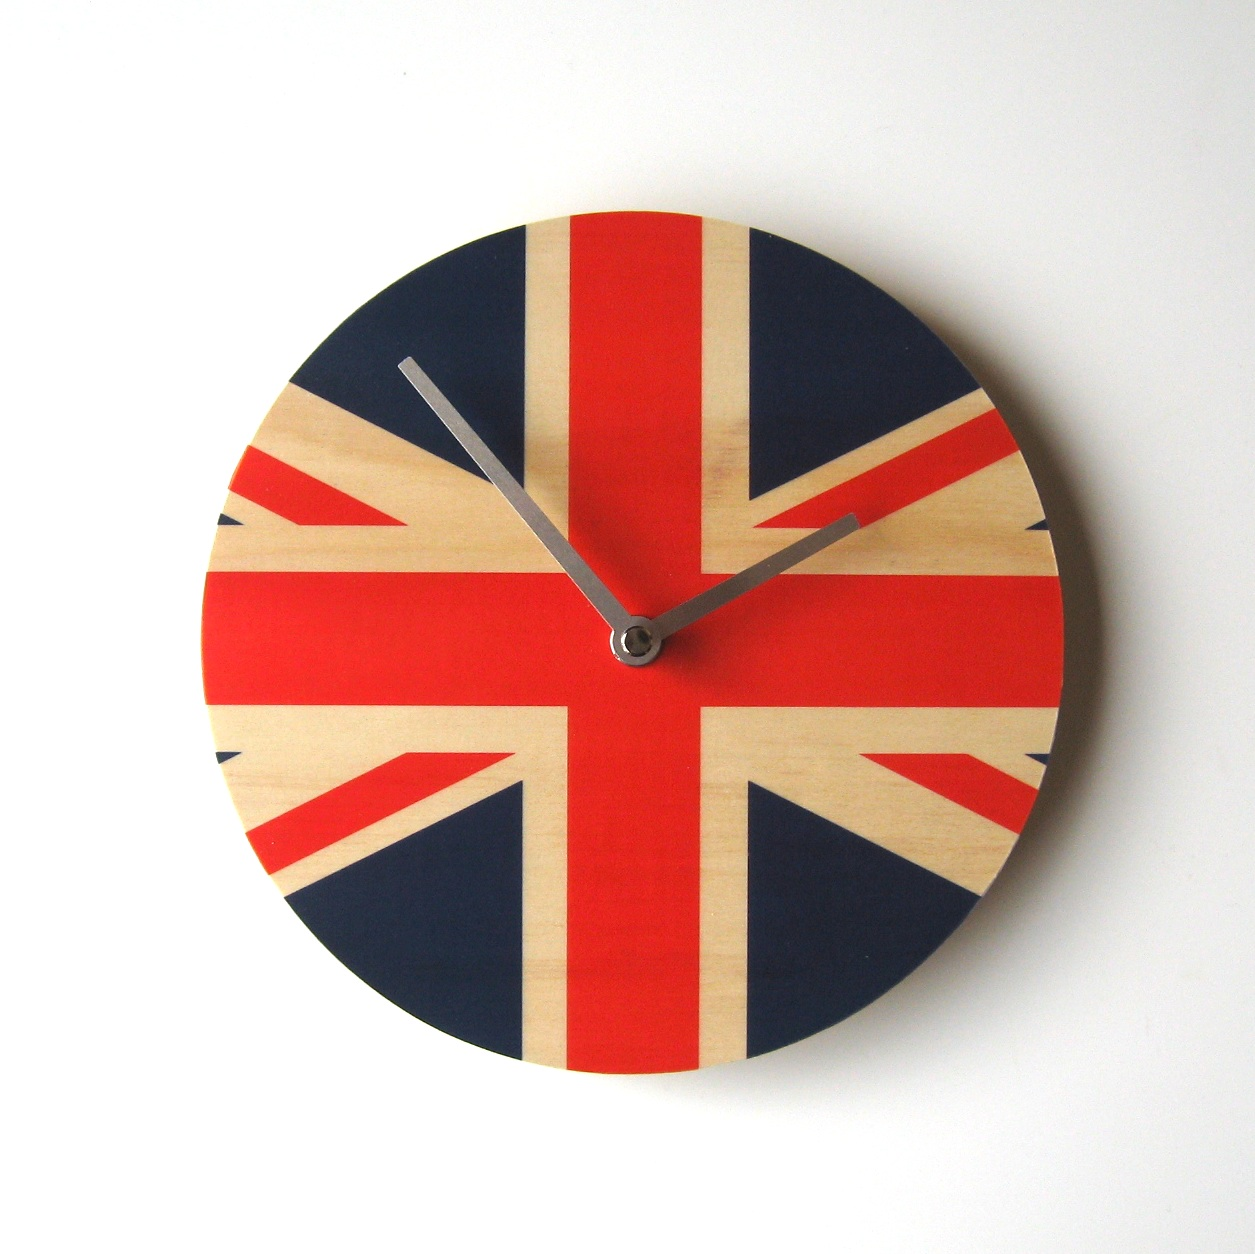 Union jack wall clock 12000 wall clocks union jack wall clock amipublicfo Images